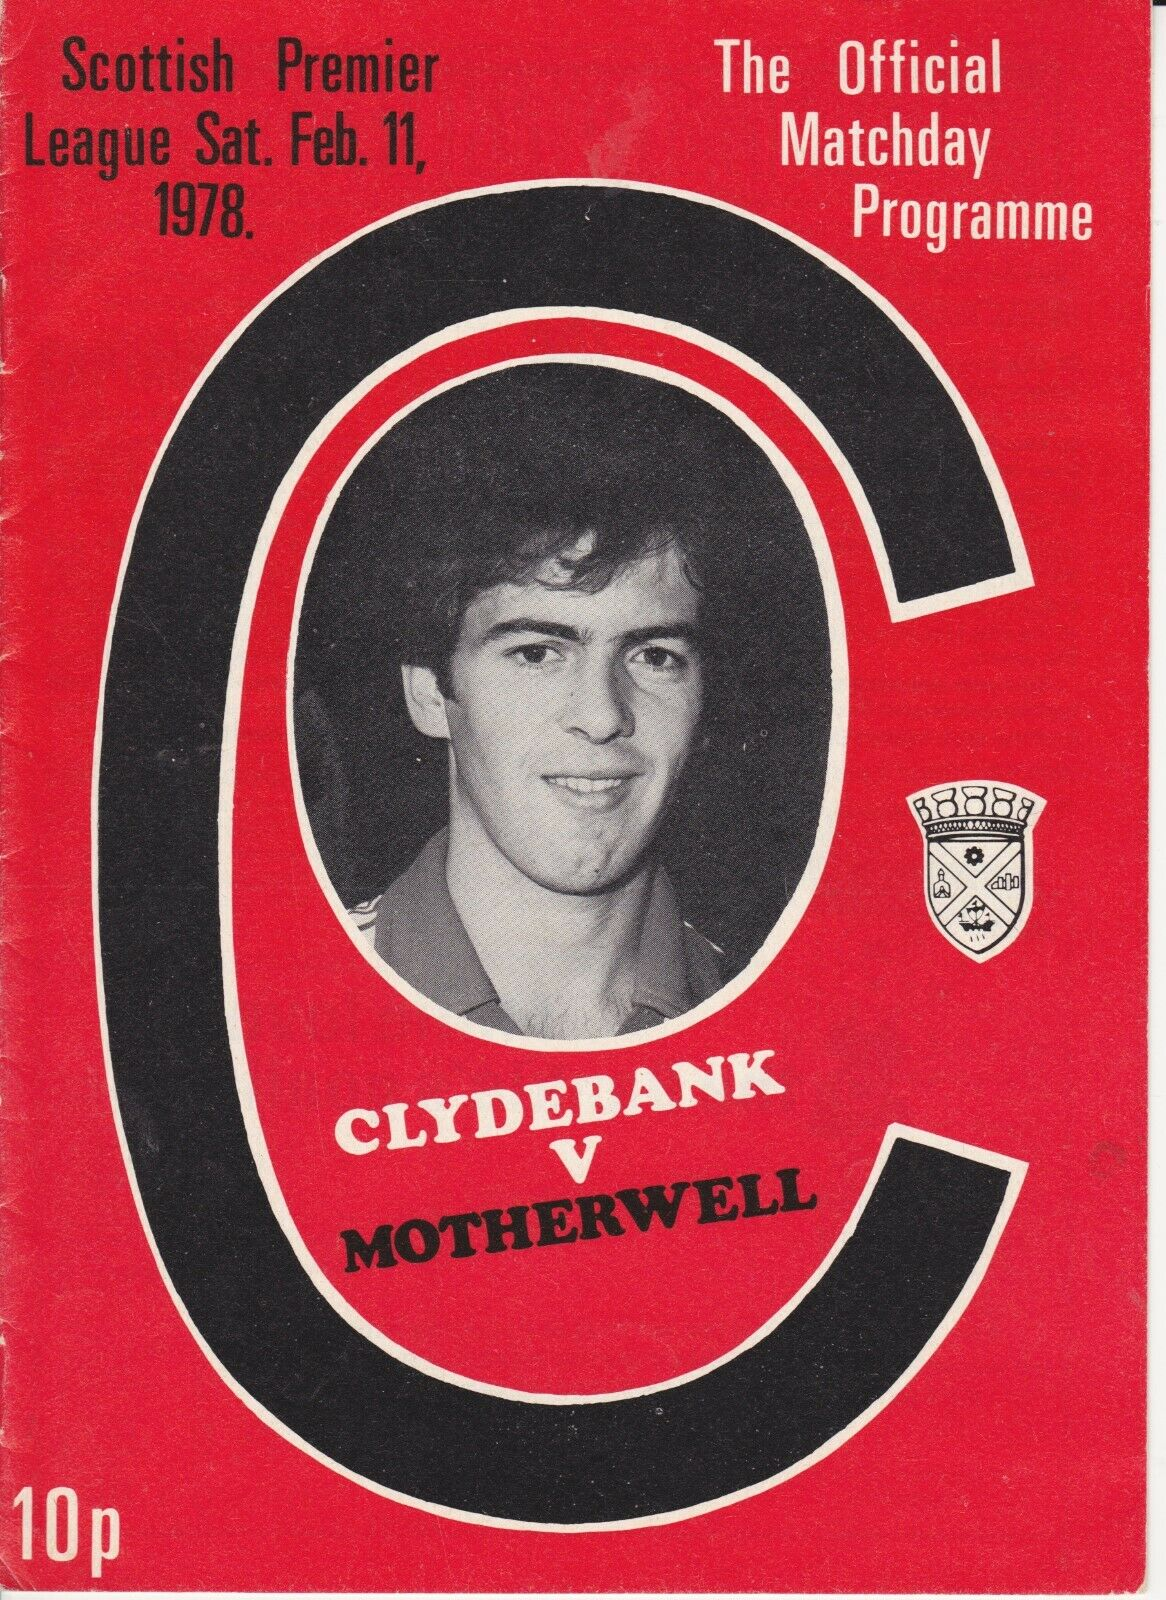 versus Clydebank Programme Cover - Original Match was postponed, rearranged 11th March 1978